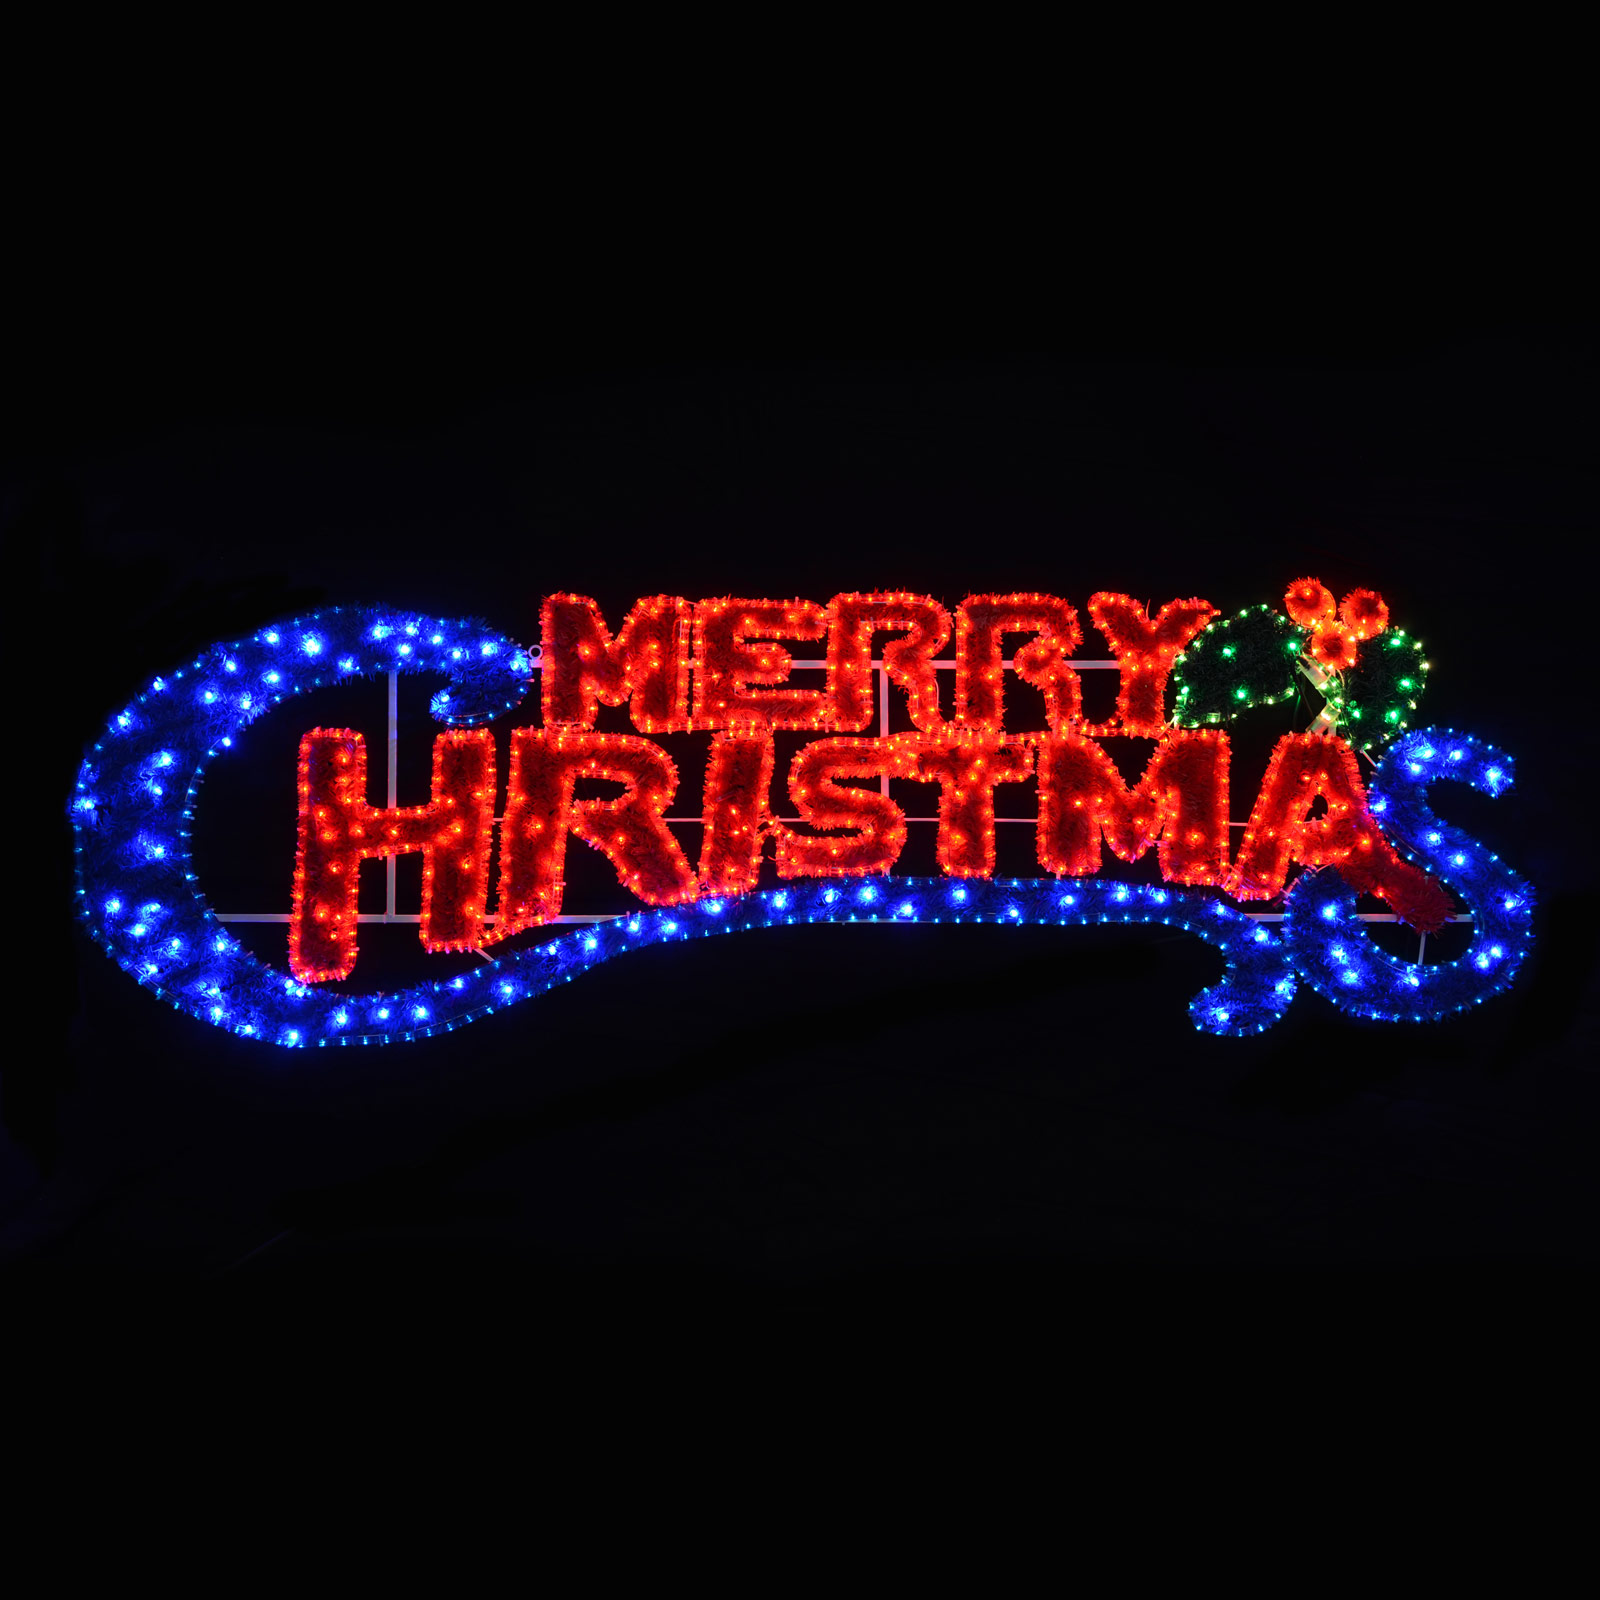 Large LED Rope Flashing Blue & Red Light Merry Christmas